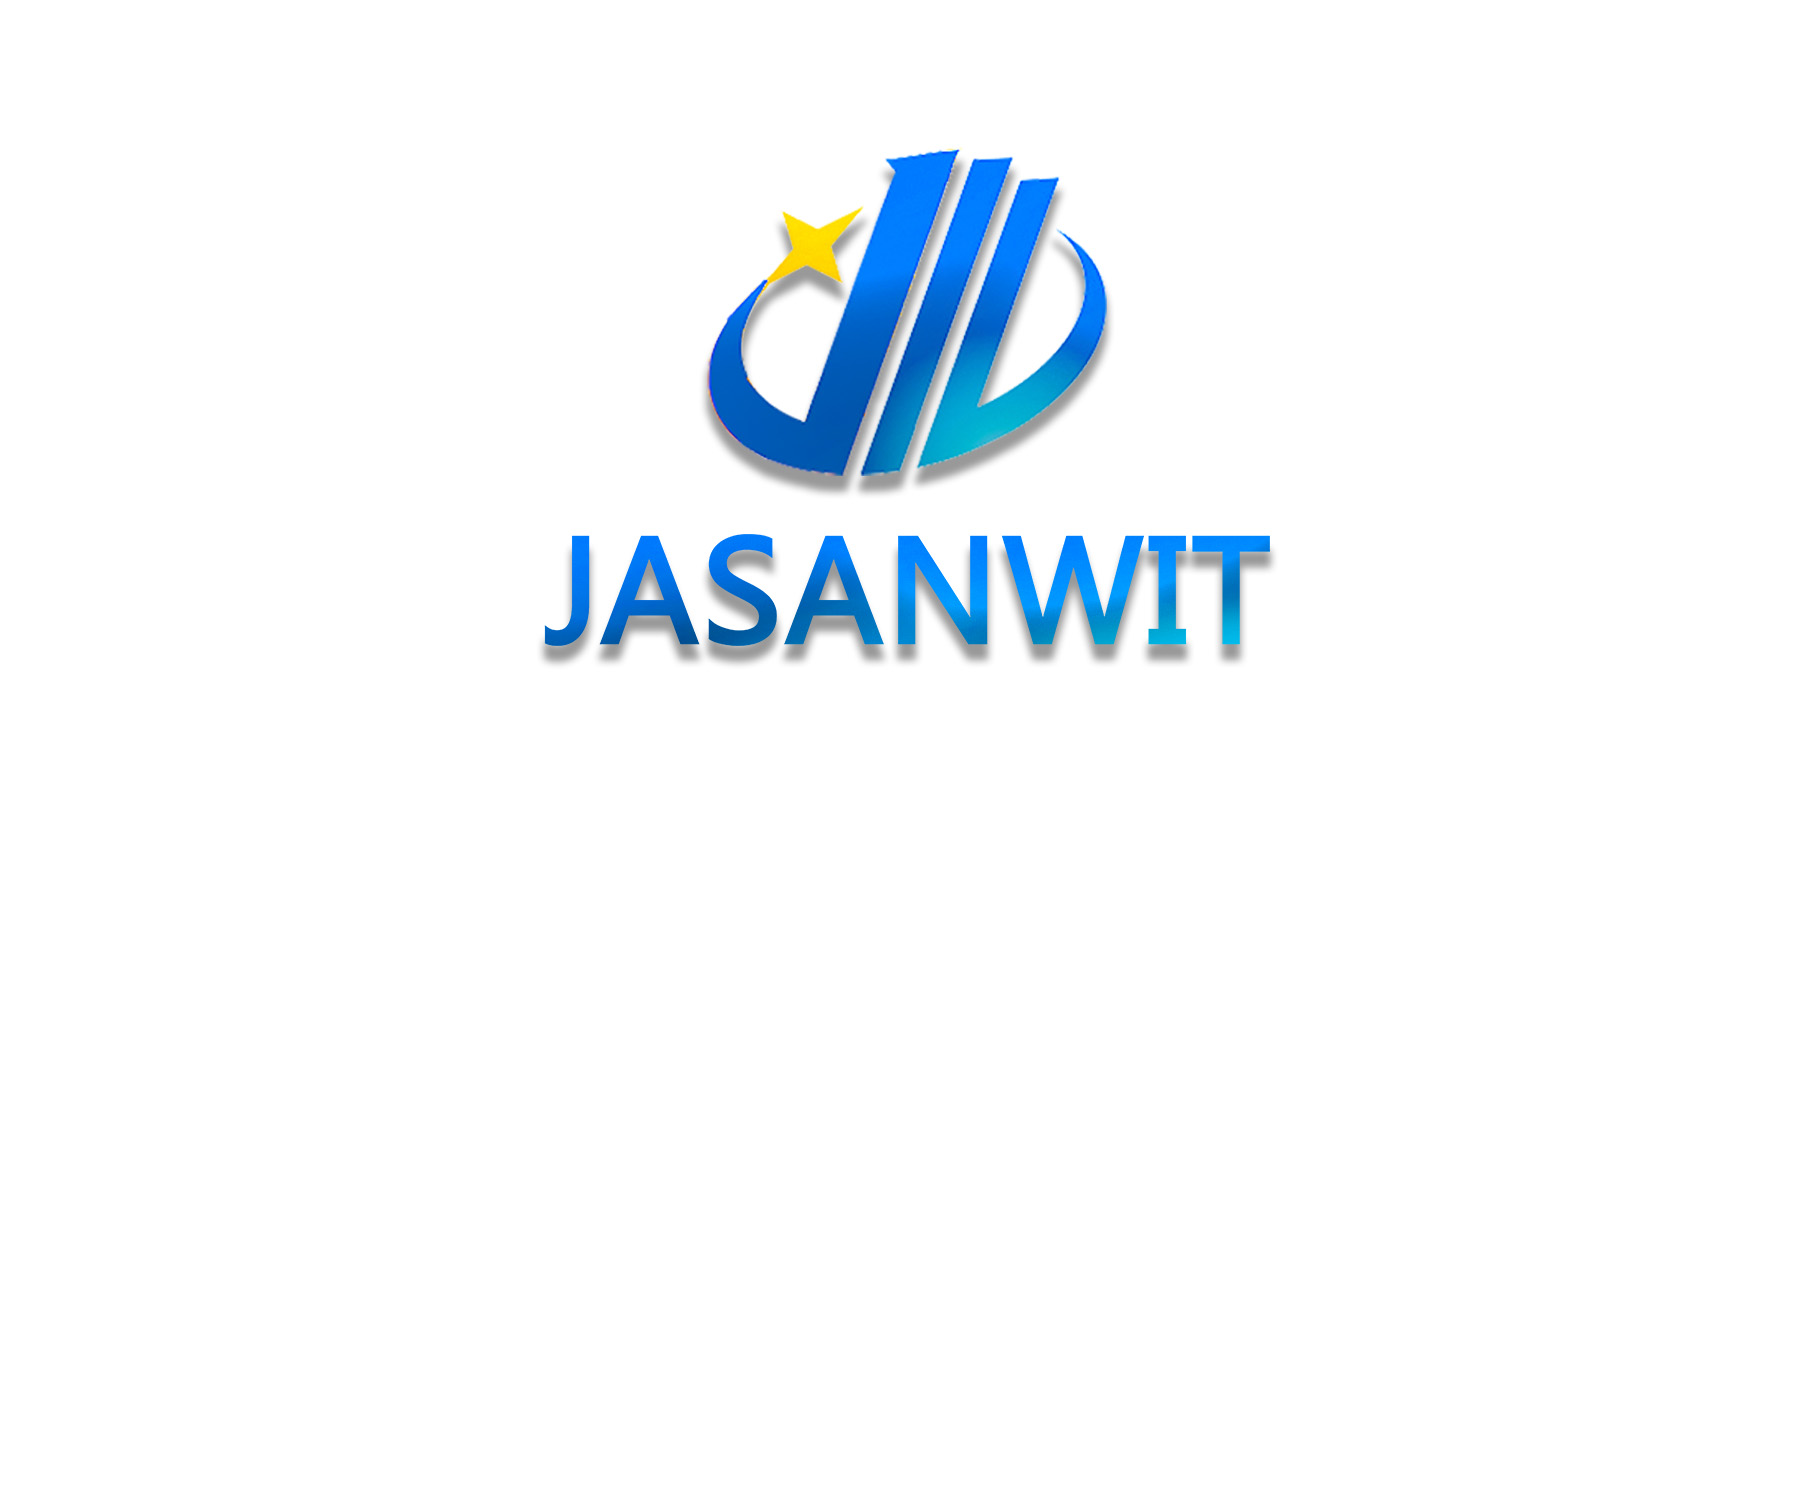 Jasanwit Intelligent Technology Co., Ltd.